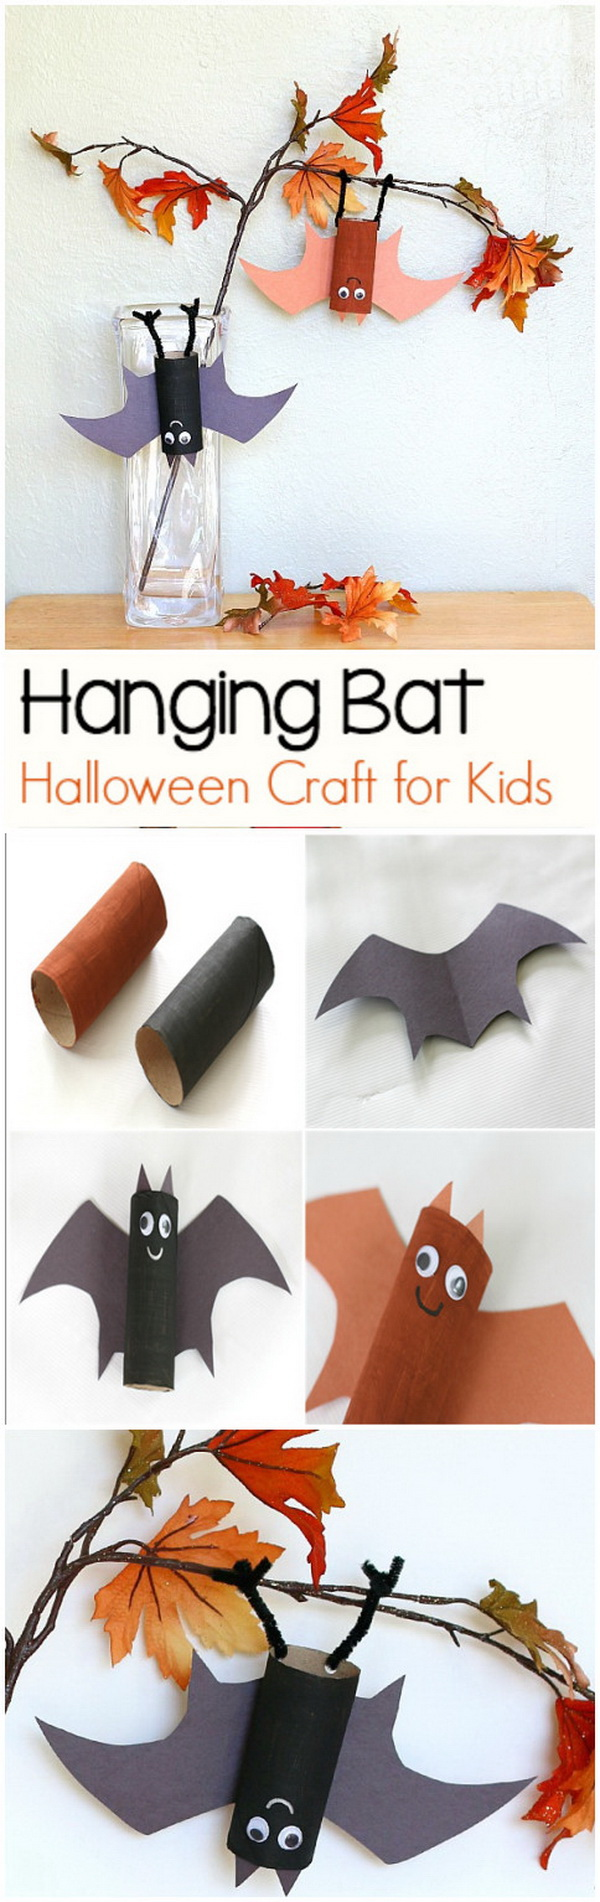 Hanging Bat Craft for Kids with Bat Wing Template. Create these simple hanging bats using empty toilet paper rolls and hanging them on the branch! This little project looks so adorable and helps kids decorating for fall or Halloween.